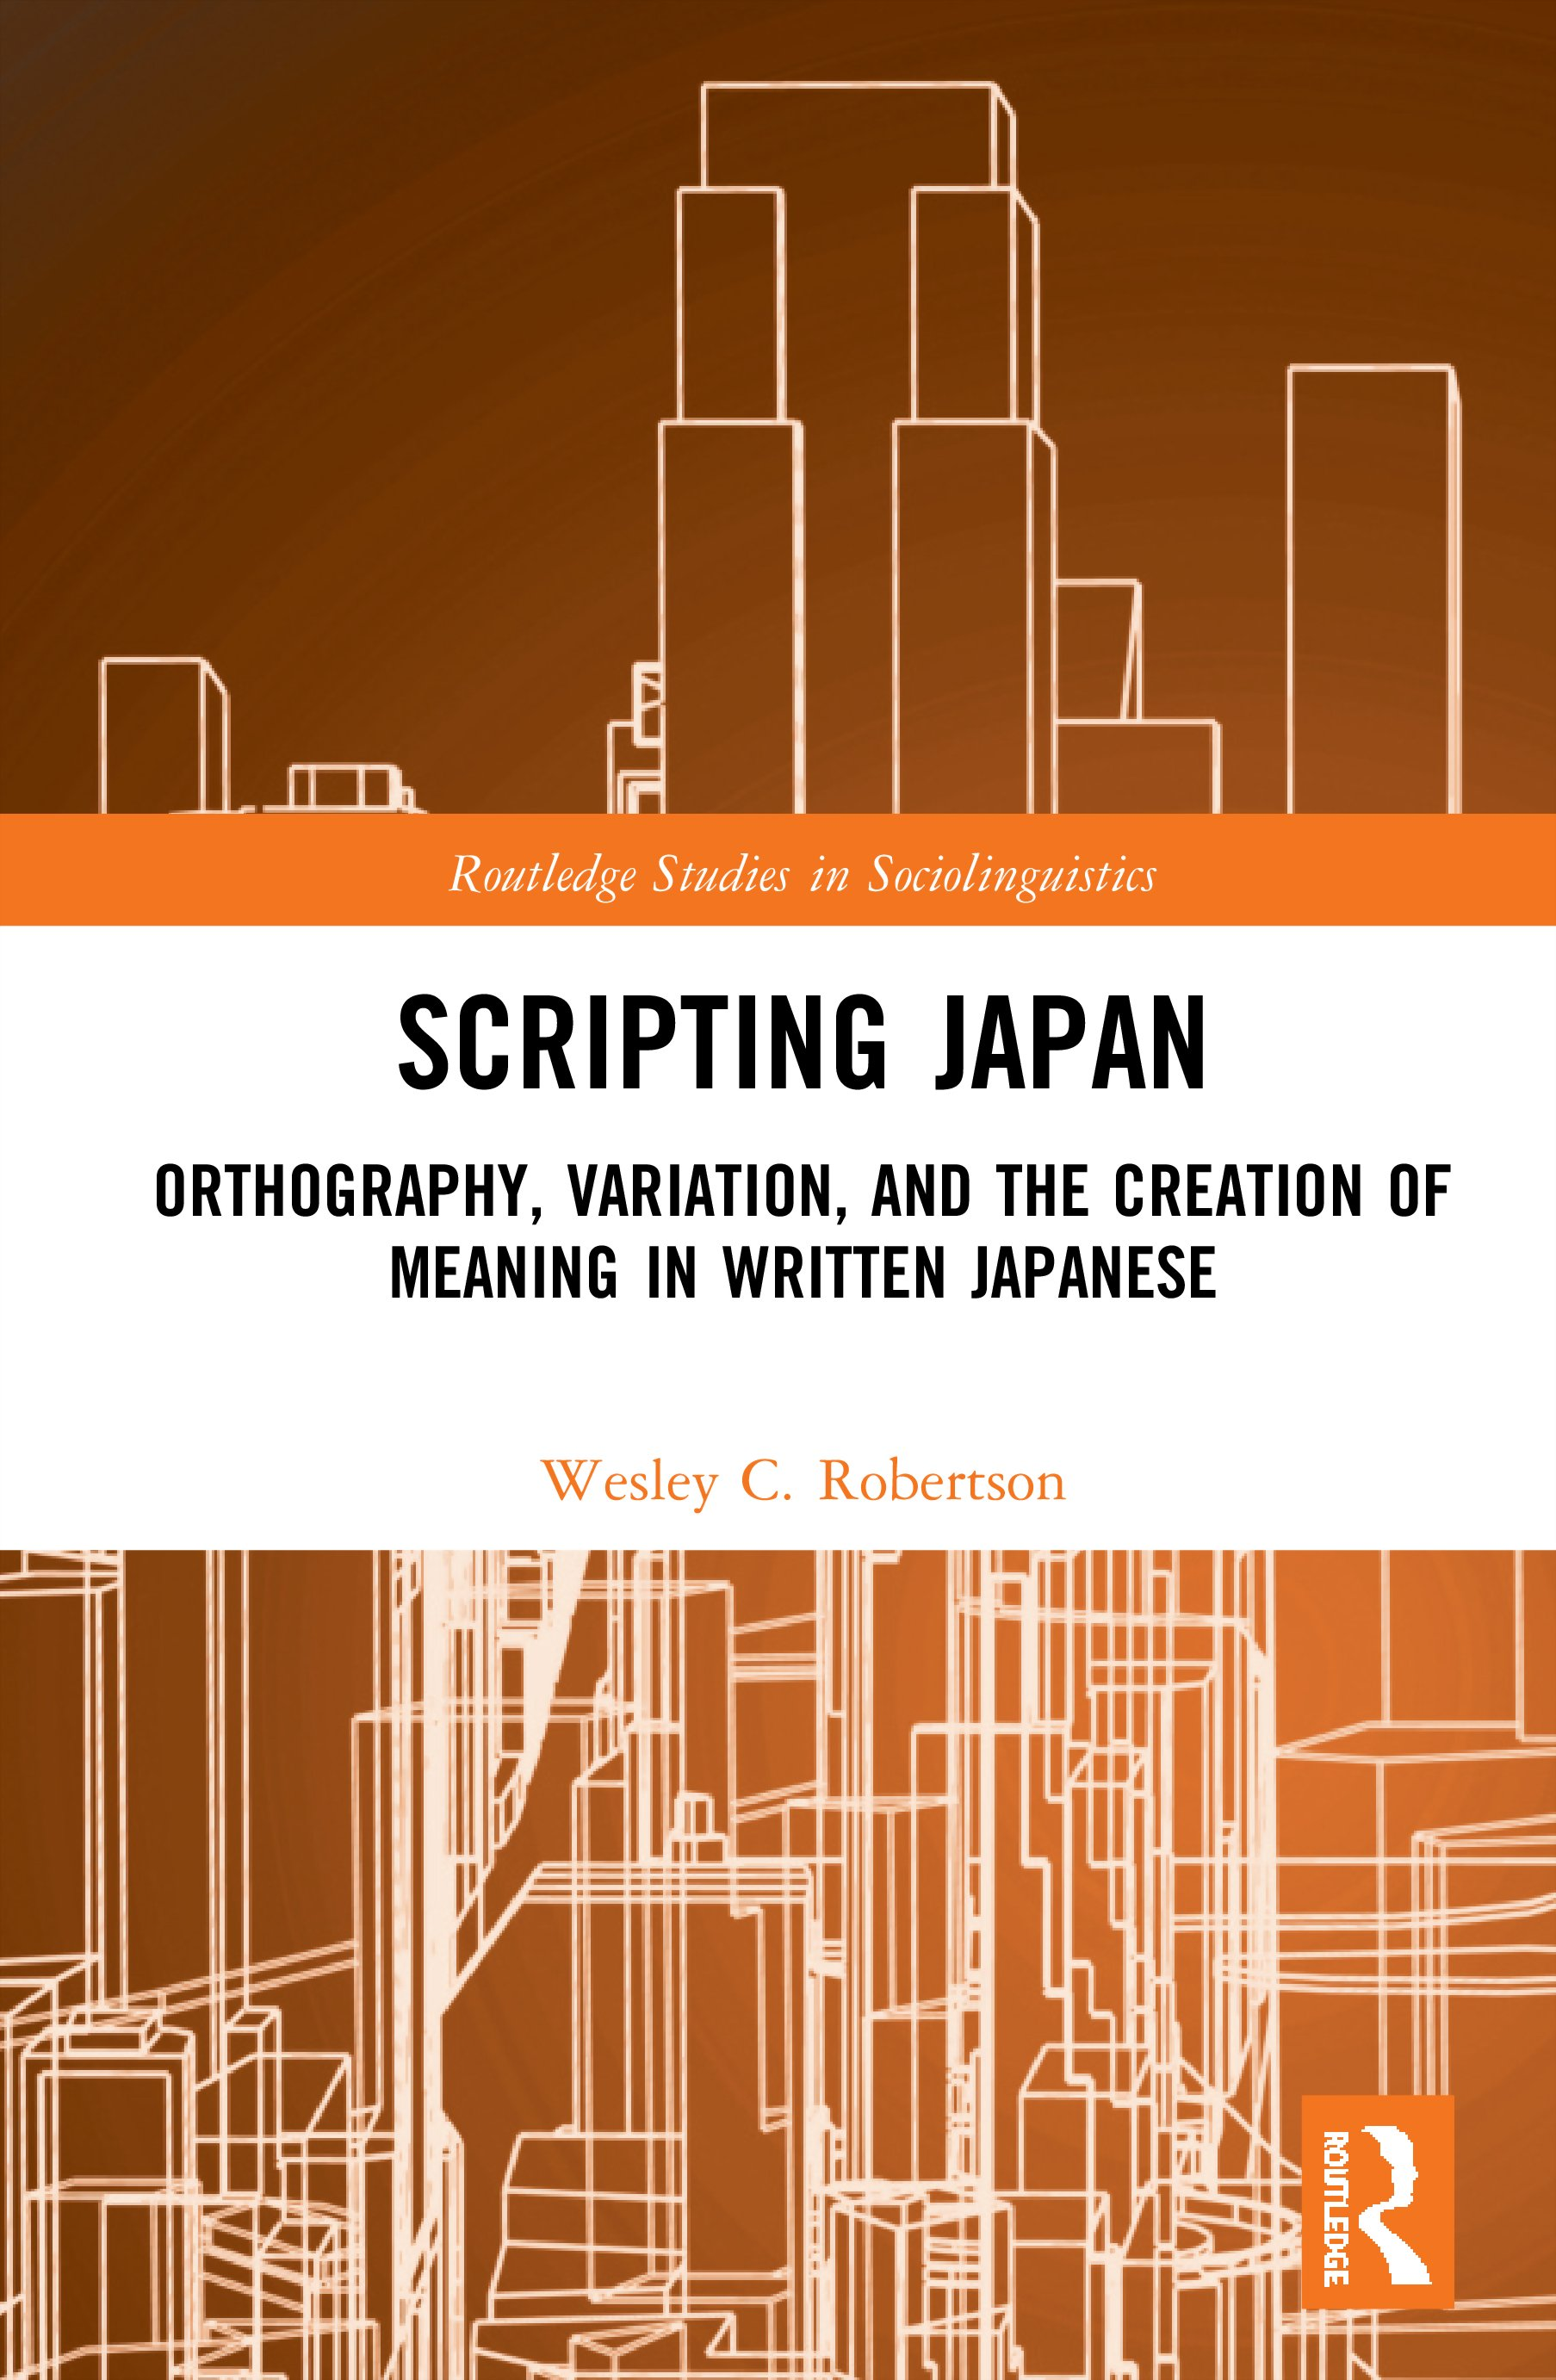 Scripting Japan: Orthography, Variation, and the Creation of Meaning in Written Japanese book cover